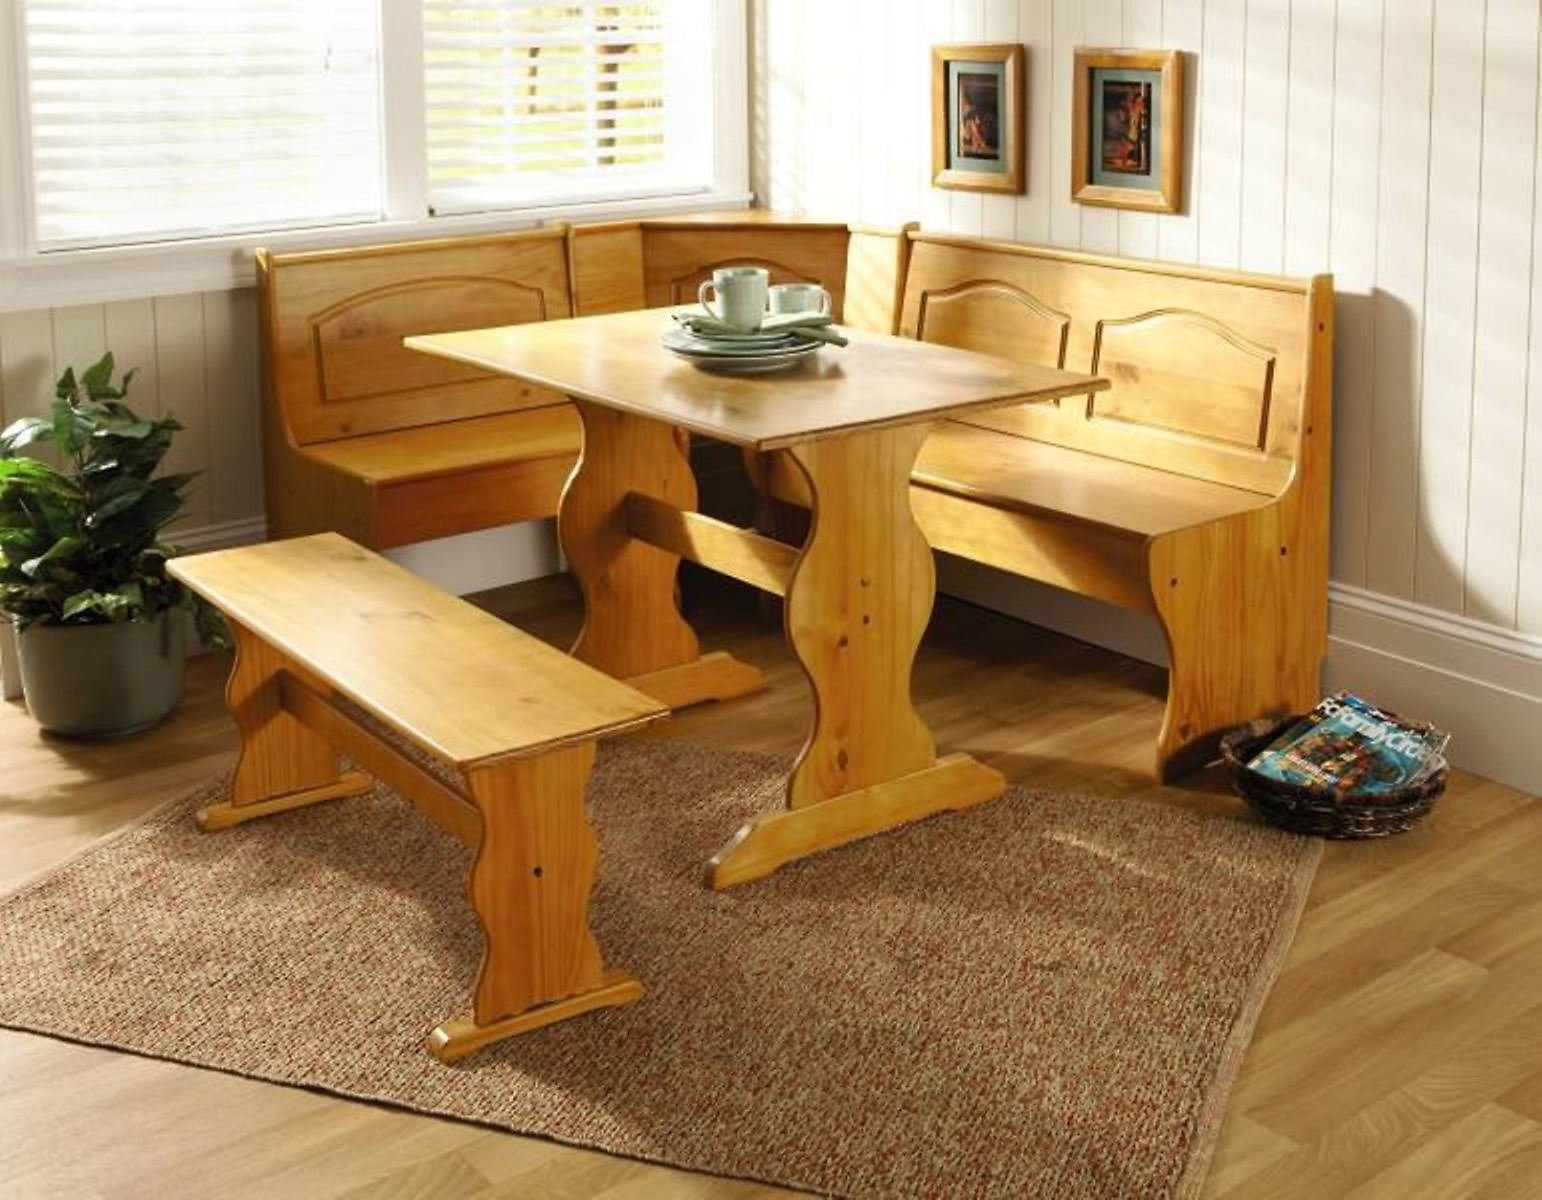 Essential Home Essential Home 3 Piece Emily Breakfast Nook in Pine